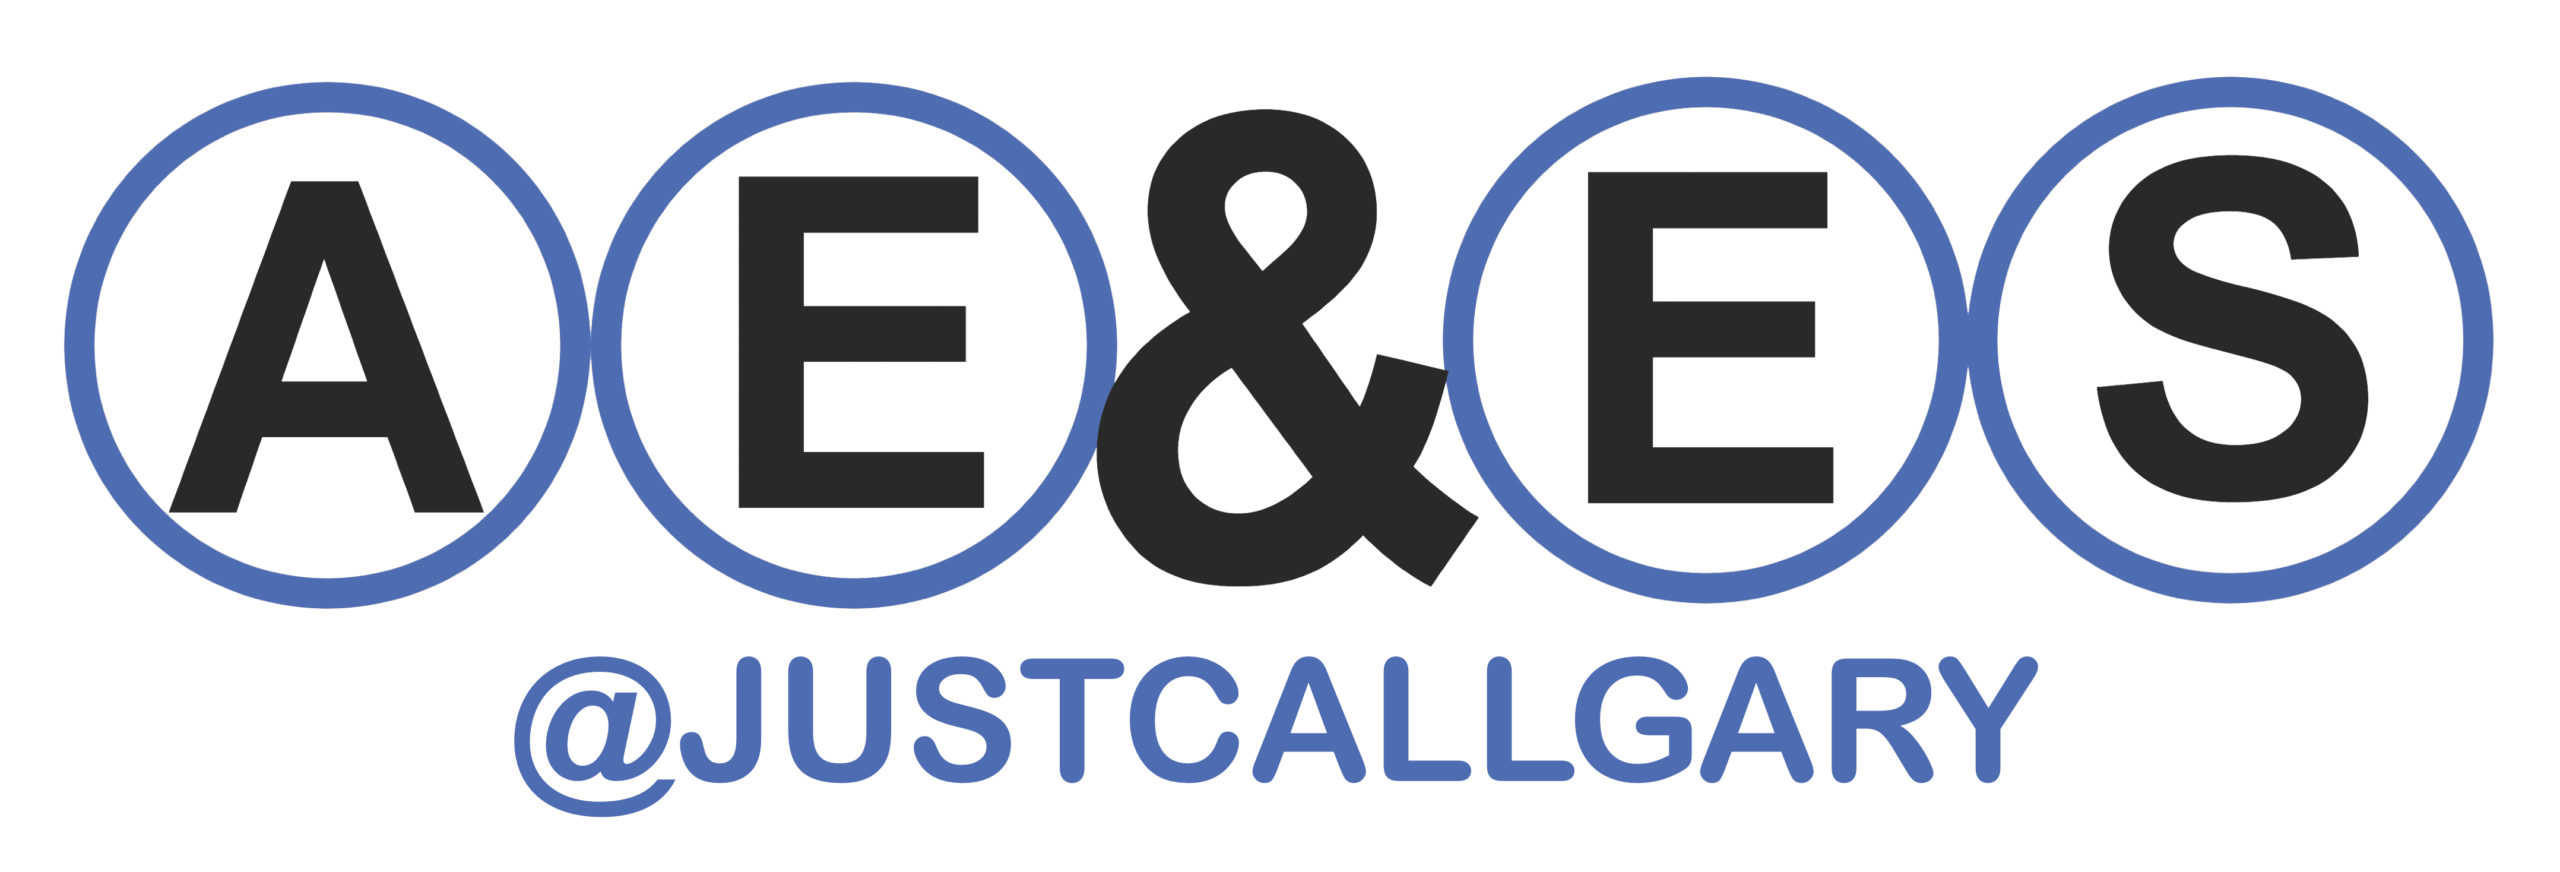 2020 AEES Logo with justcallgary